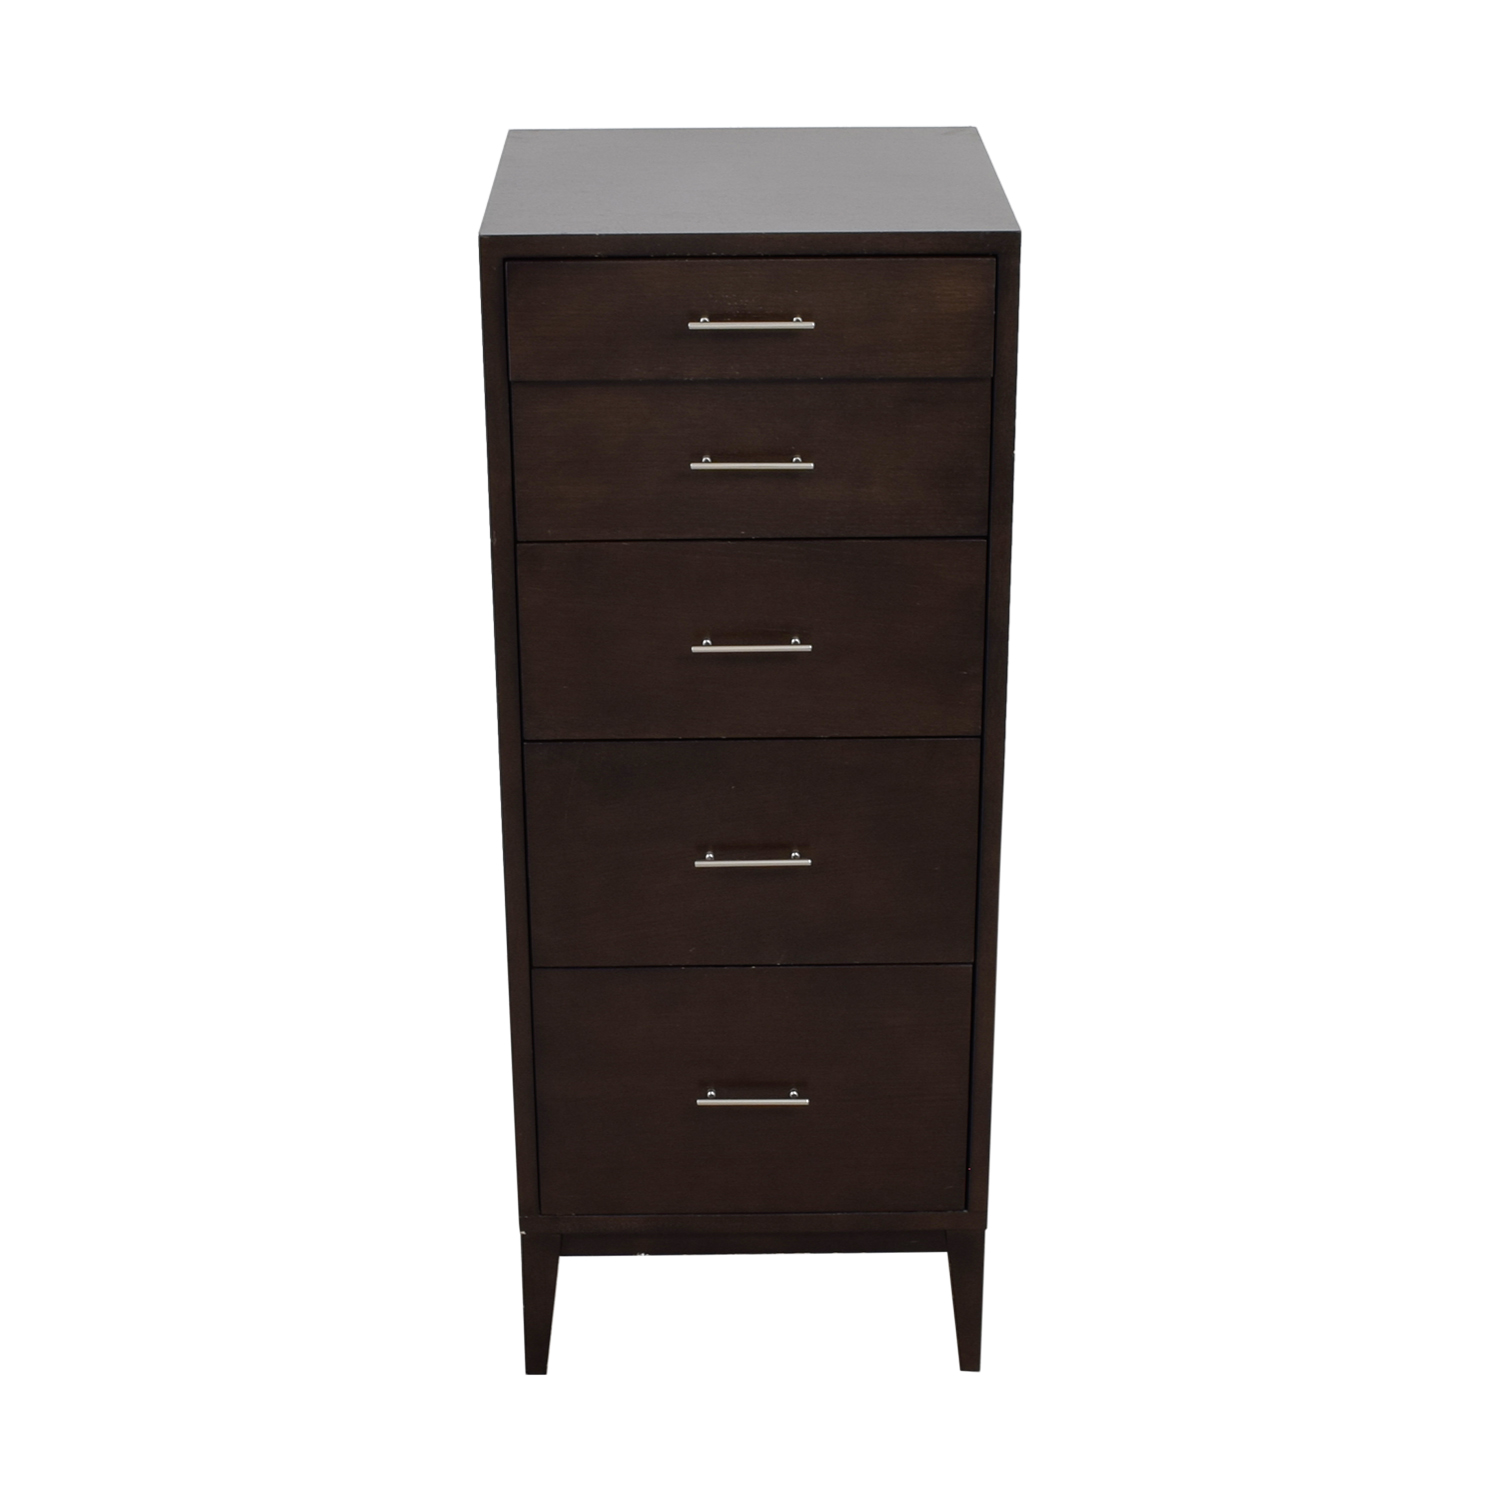 West Elm West Elm Tall Five Drawer Dresser Black